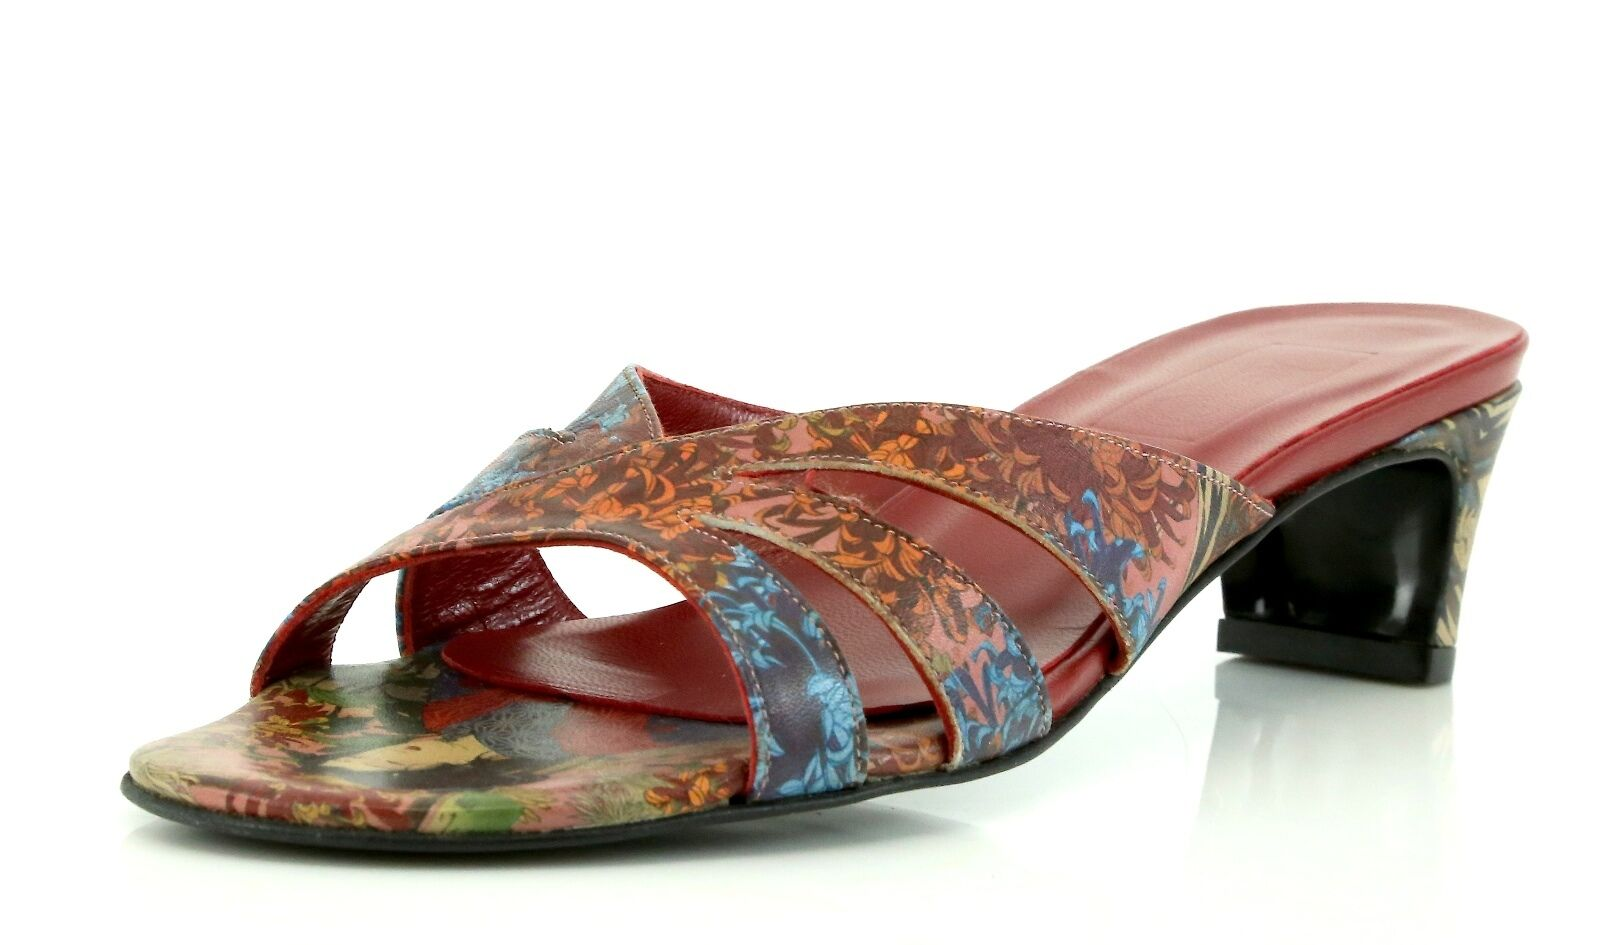 Icon FLOWER GEISHA rouge Leather Three Band Sandals 7368 Taille 7.5 M  NEW